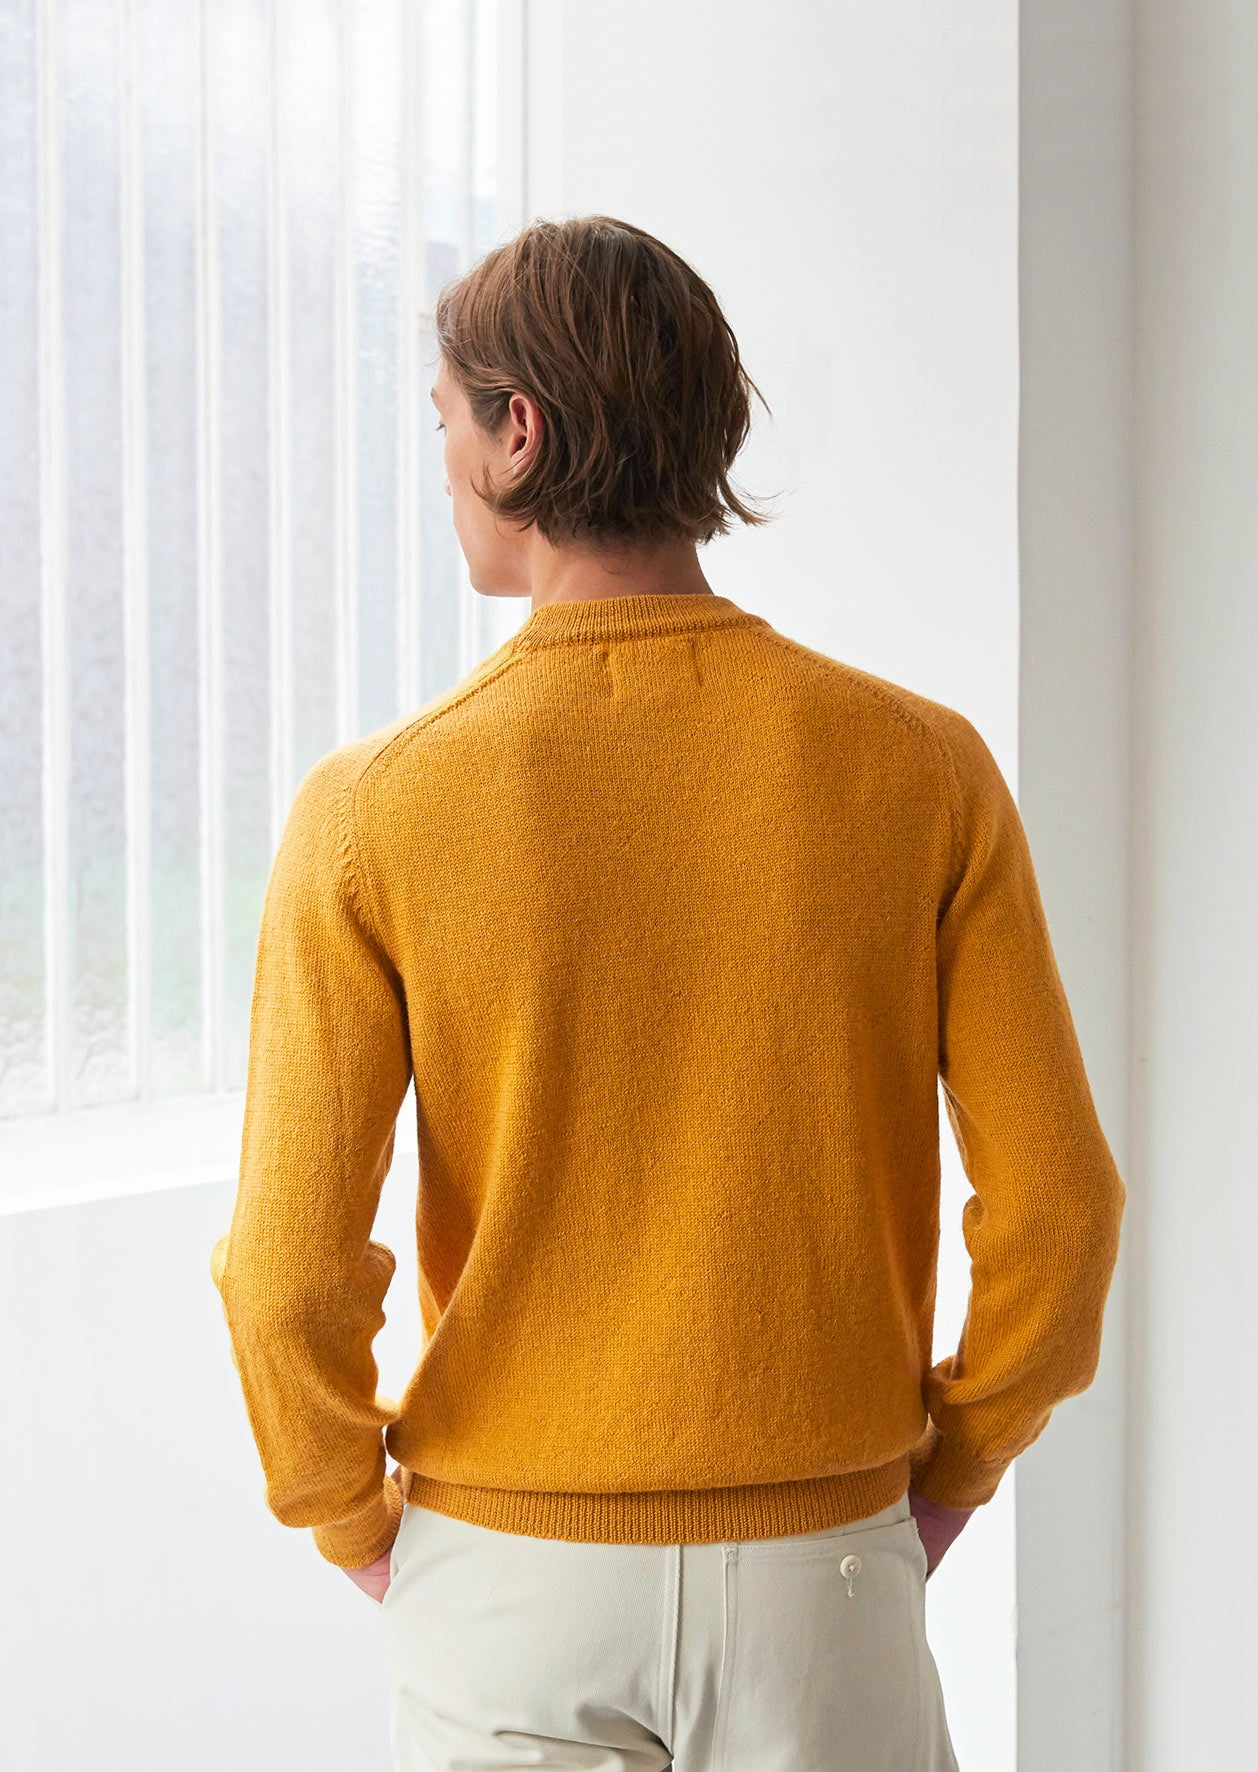 Mock neck sweater - Peruvian superfine alpaca blend - Honey